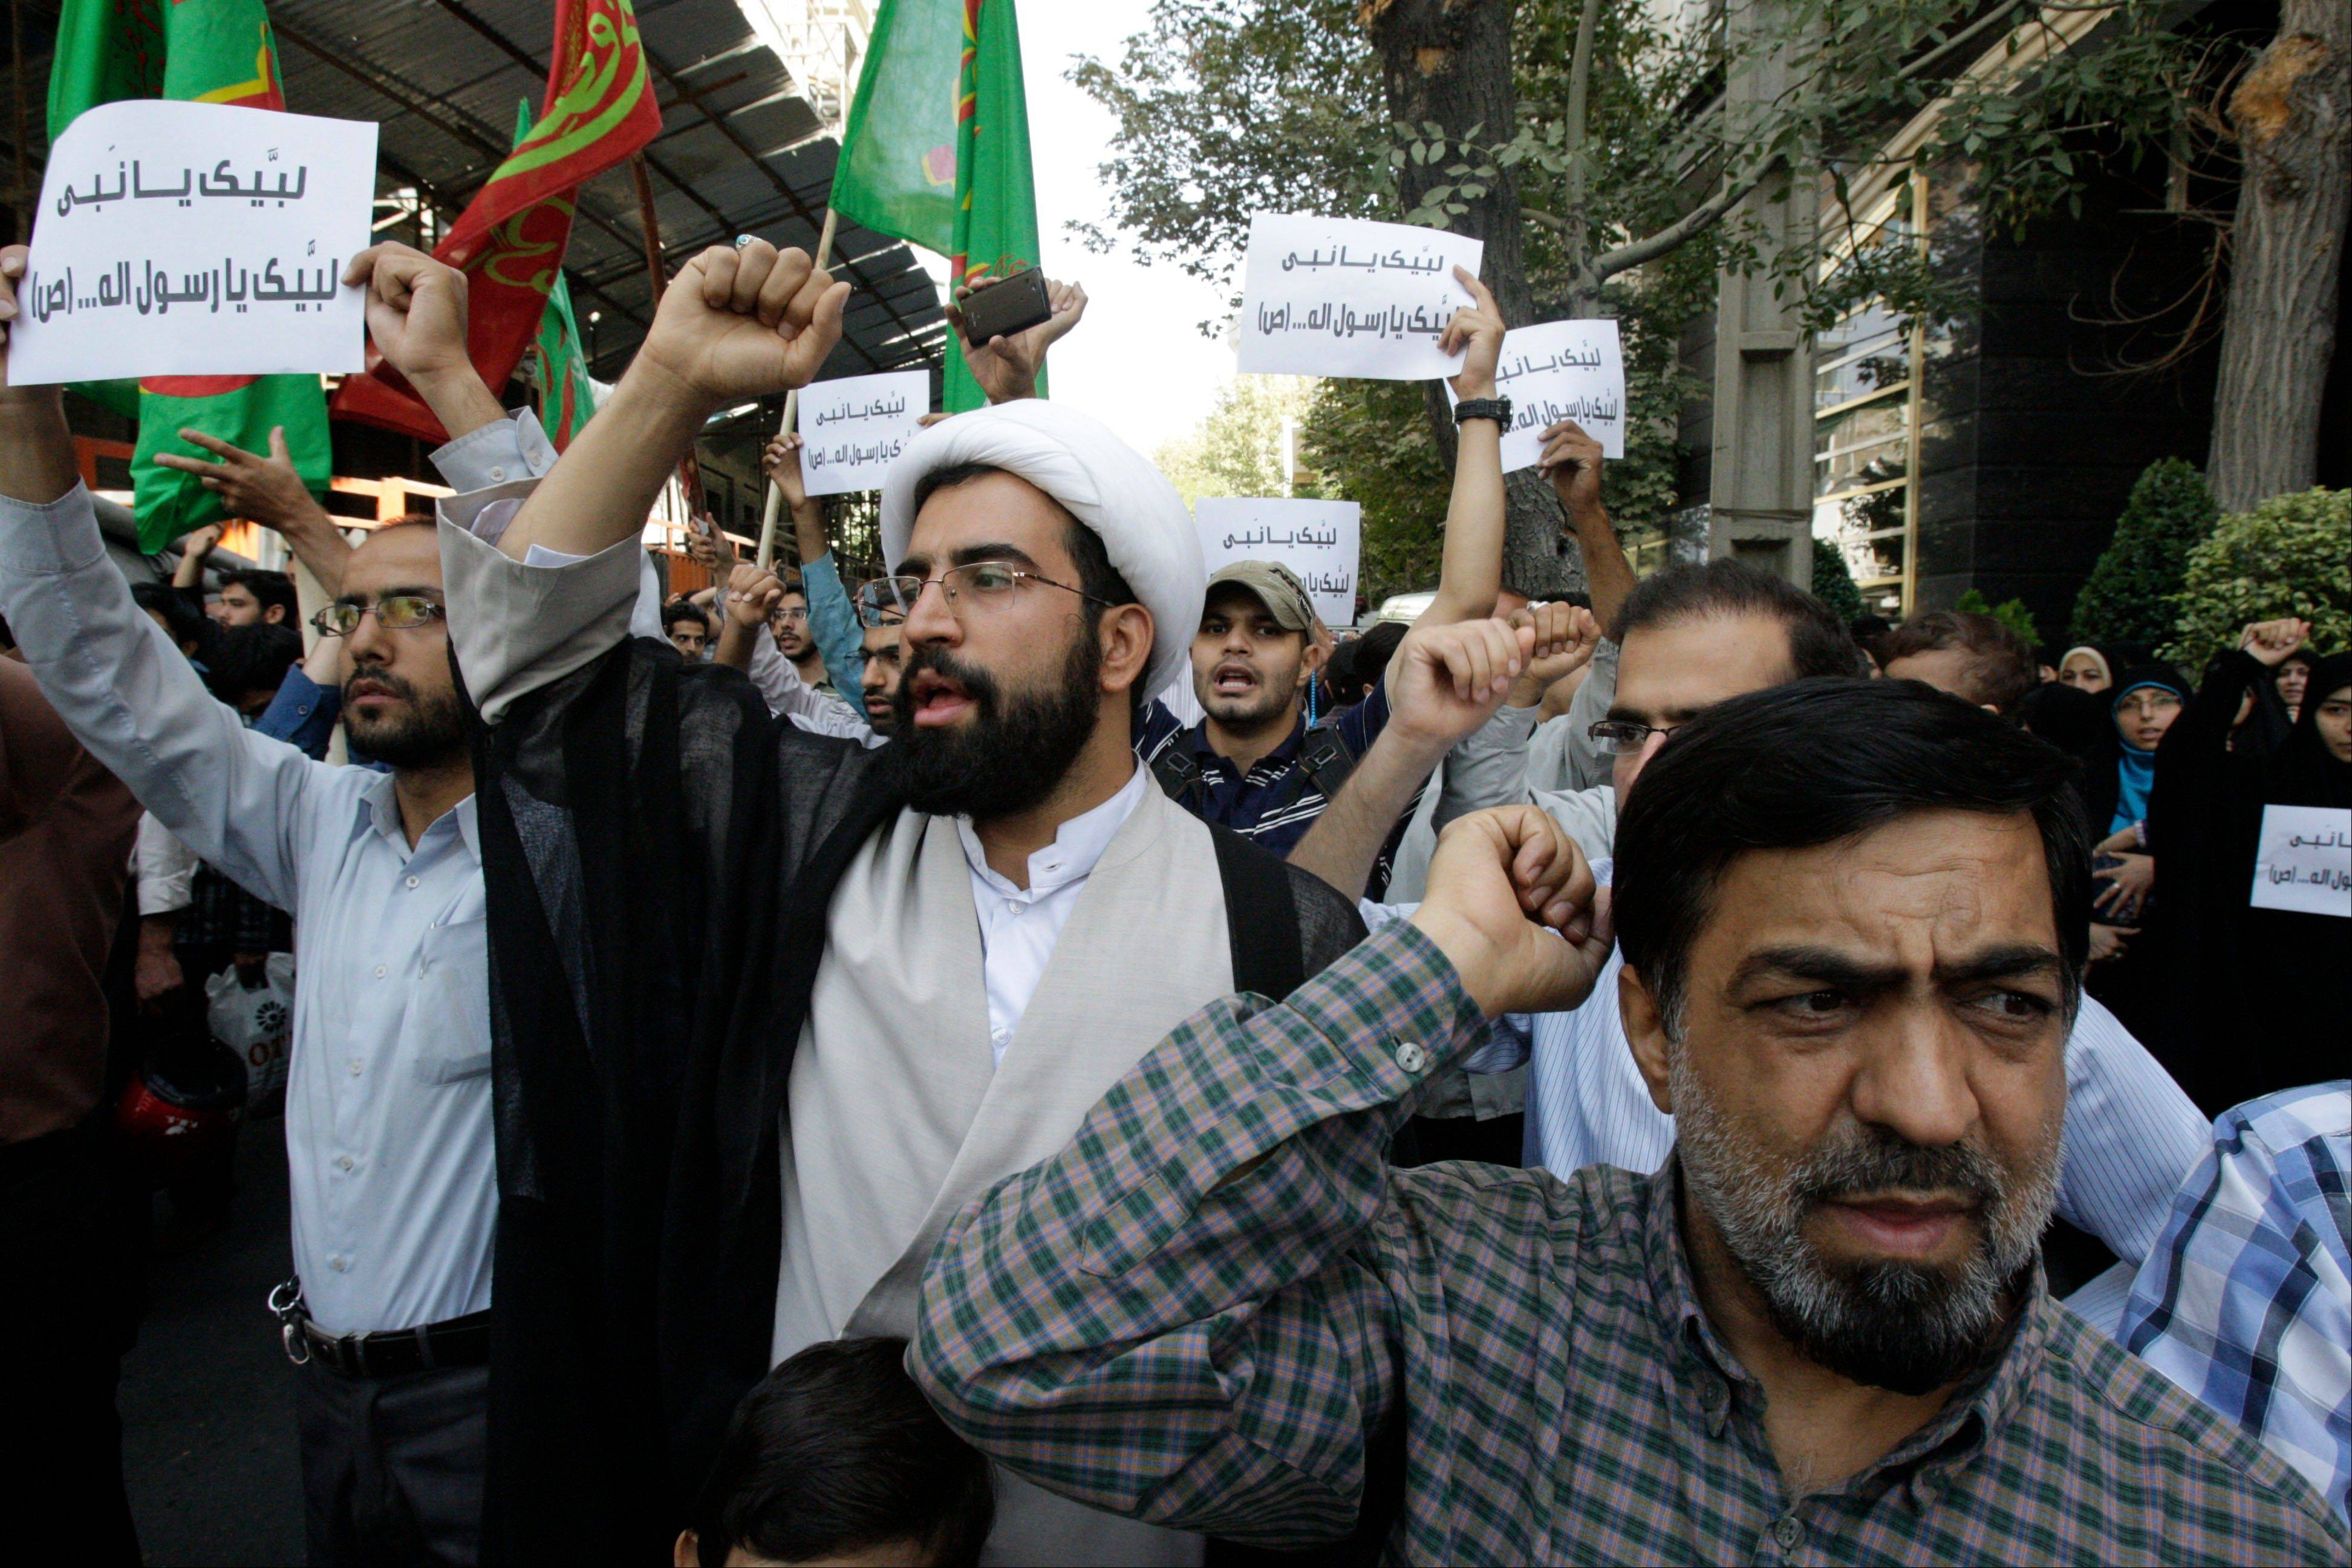 Iranian protestors chant slogans Thursday during a demonstration against a film ridiculing Islam's Prophet Muhammad, in front of Swiss Embassy in Tehran.